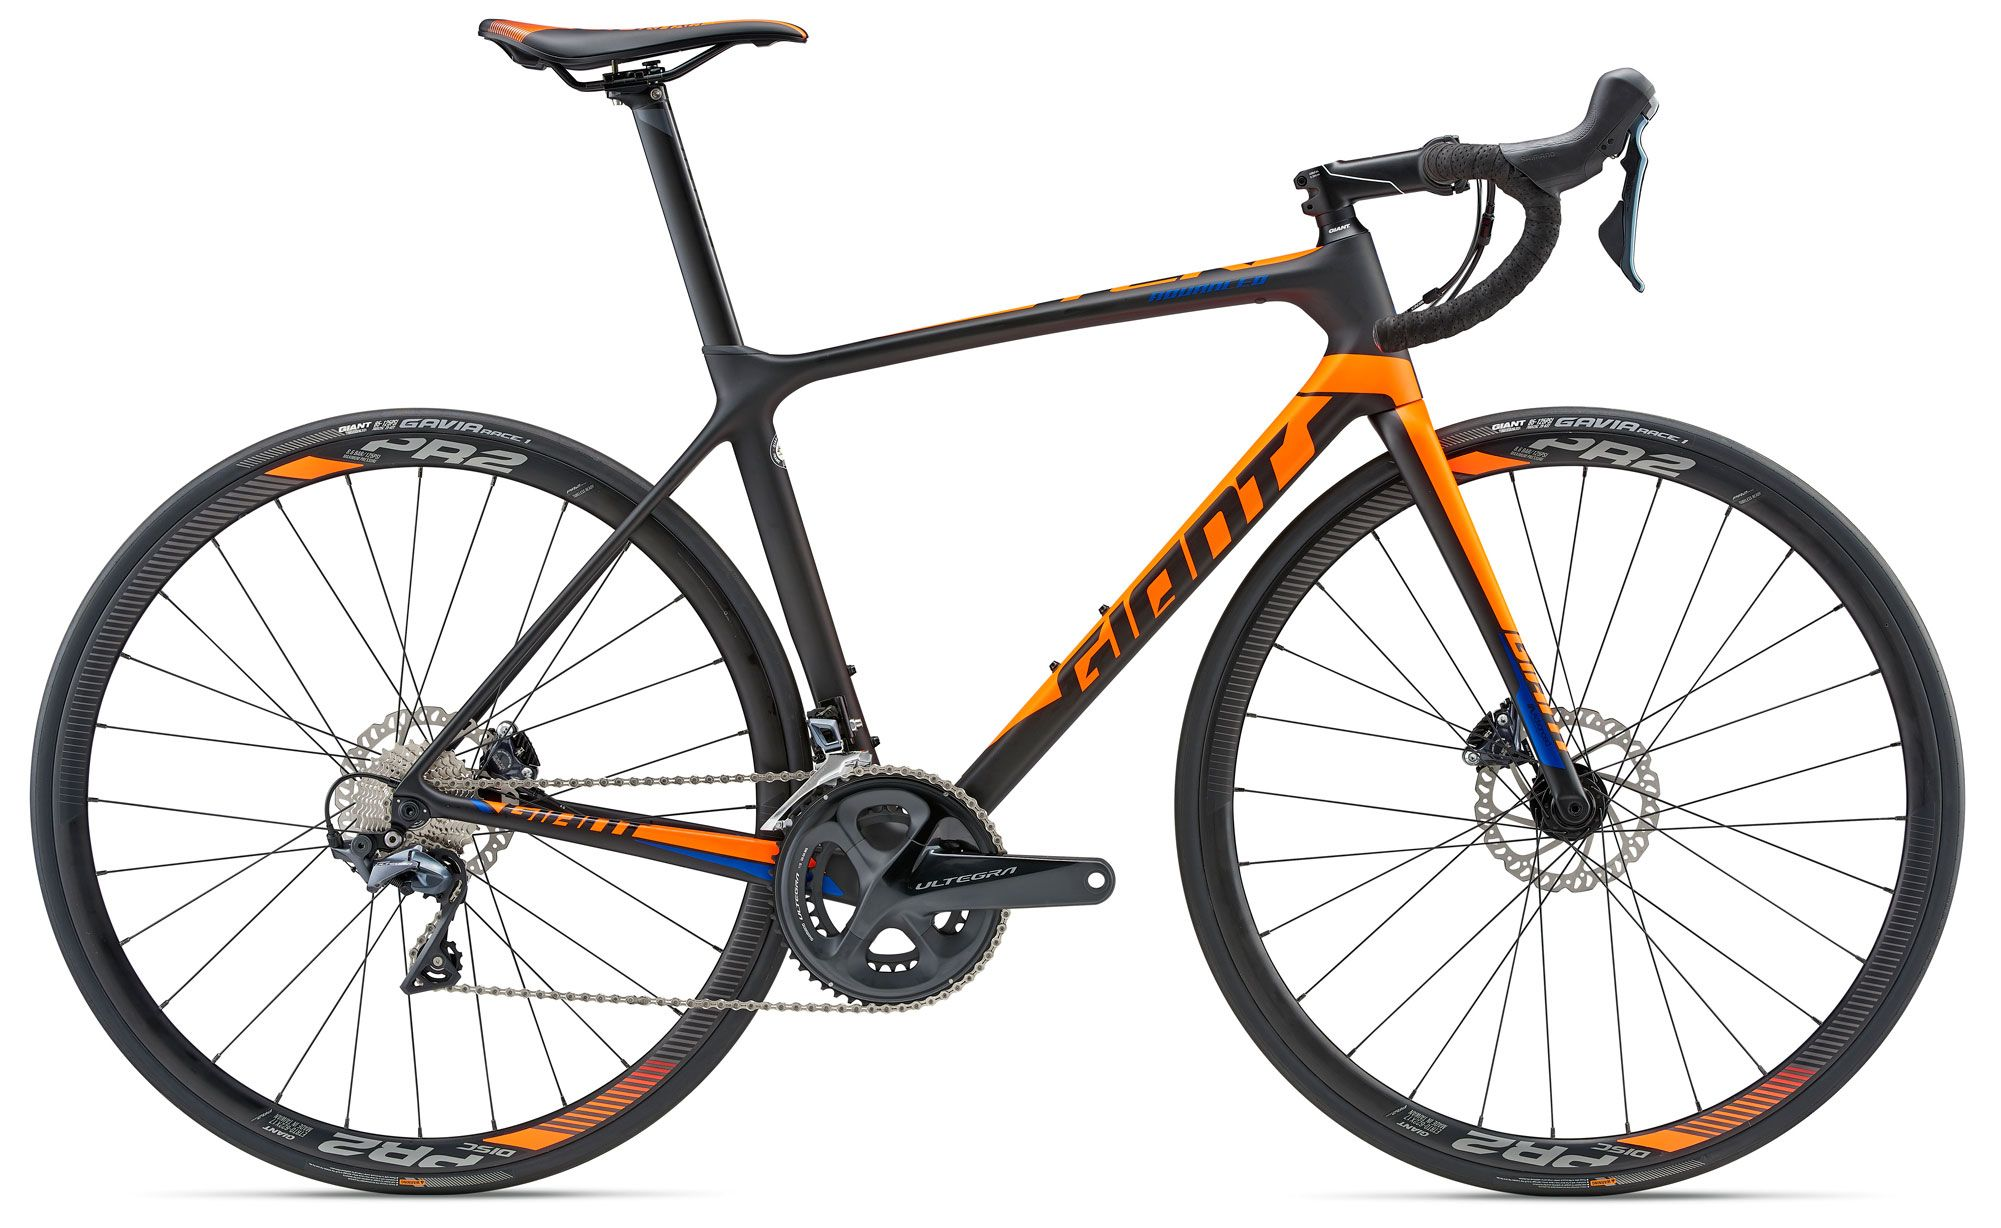 Велосипед Giant TCR Advanced 1 Disc 2018 велосипед giant trinity advanced pro 0 2016